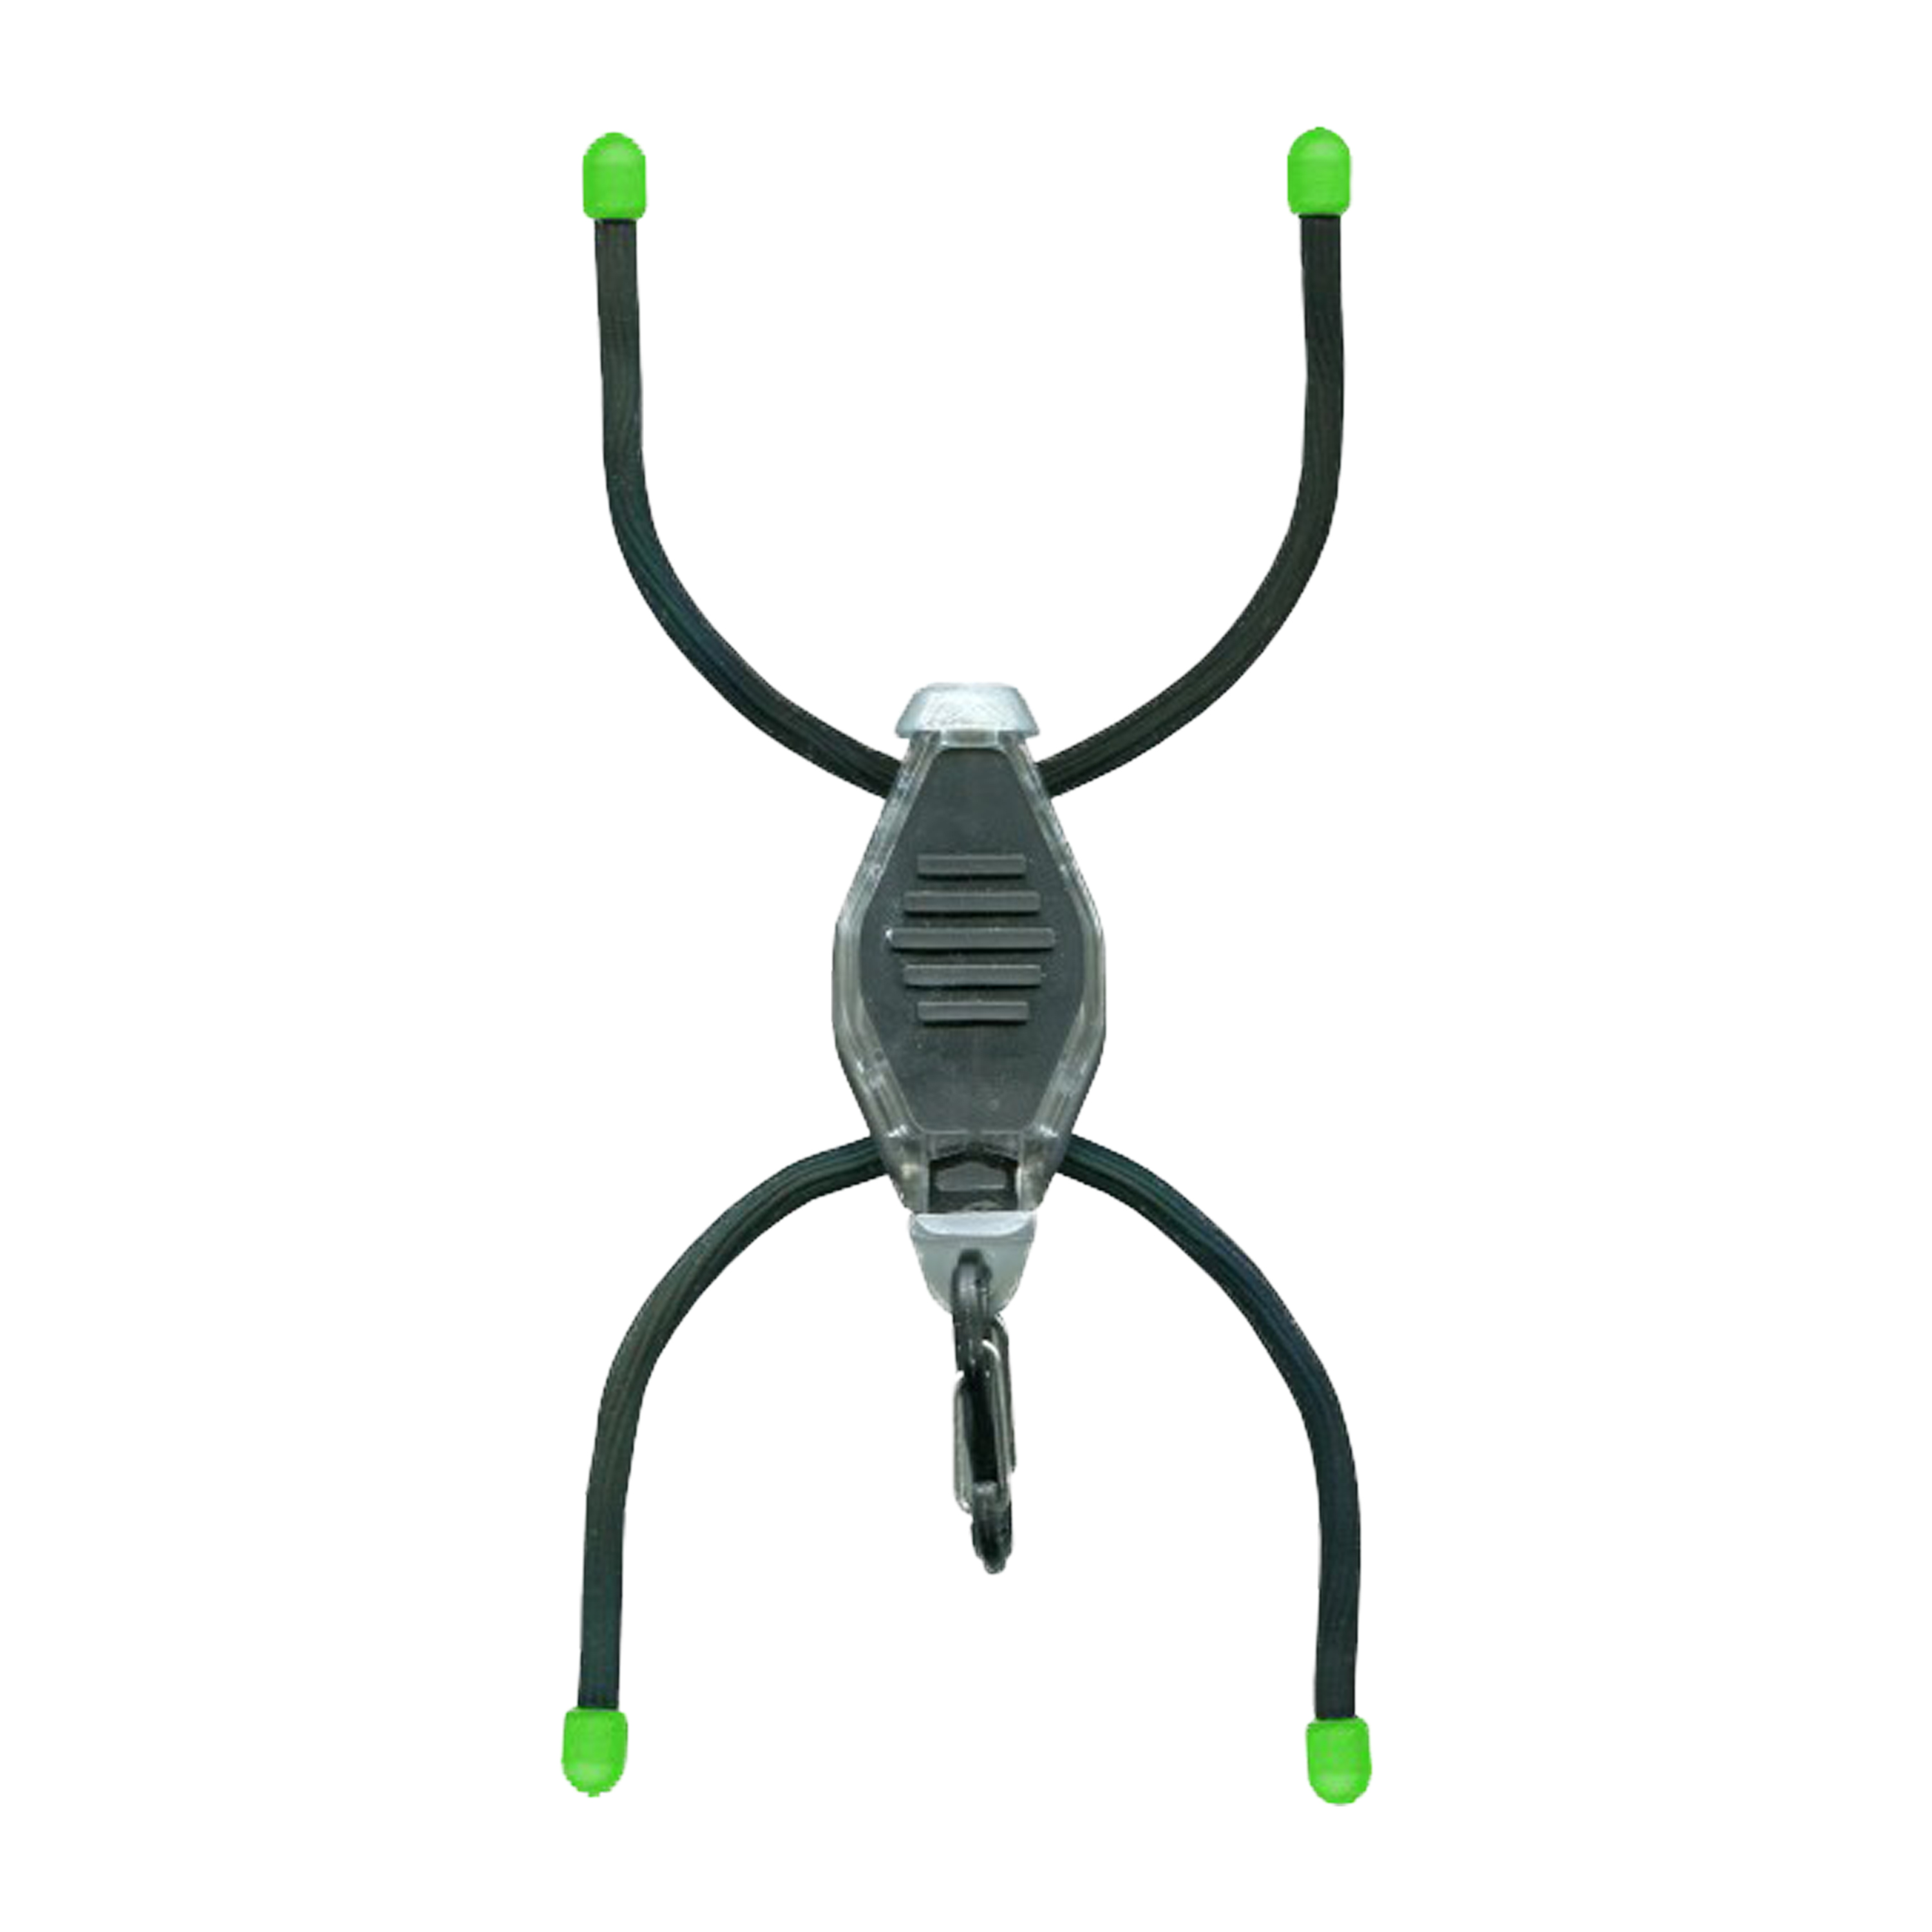 LED Microlight BugLit transparent/black